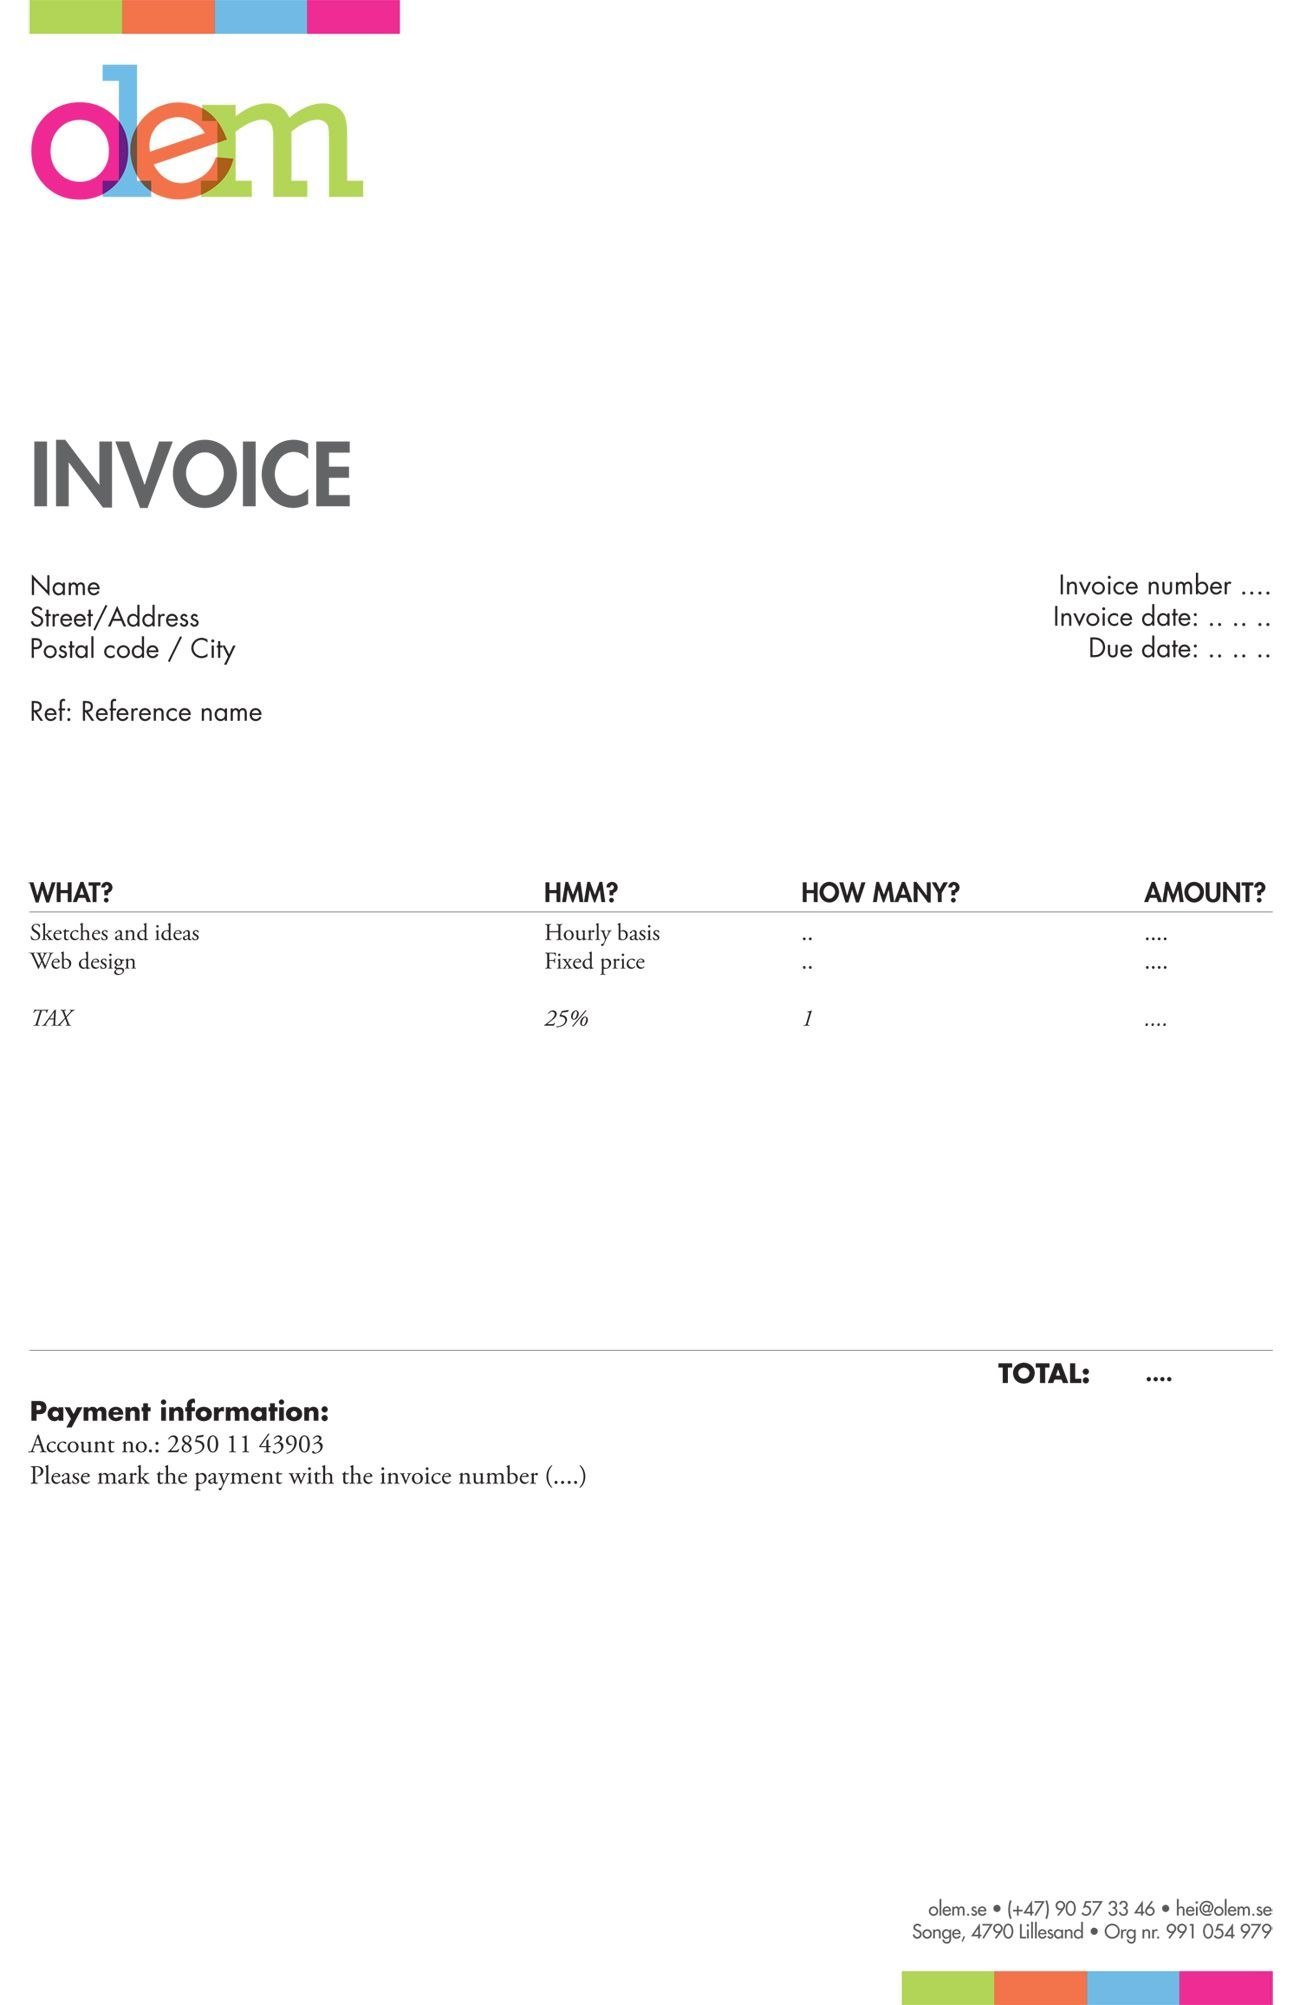 Invoice Like A Pro Design Examples And Best Practices  Biz Cards In Invoice Template For Graphic Designer Freelance